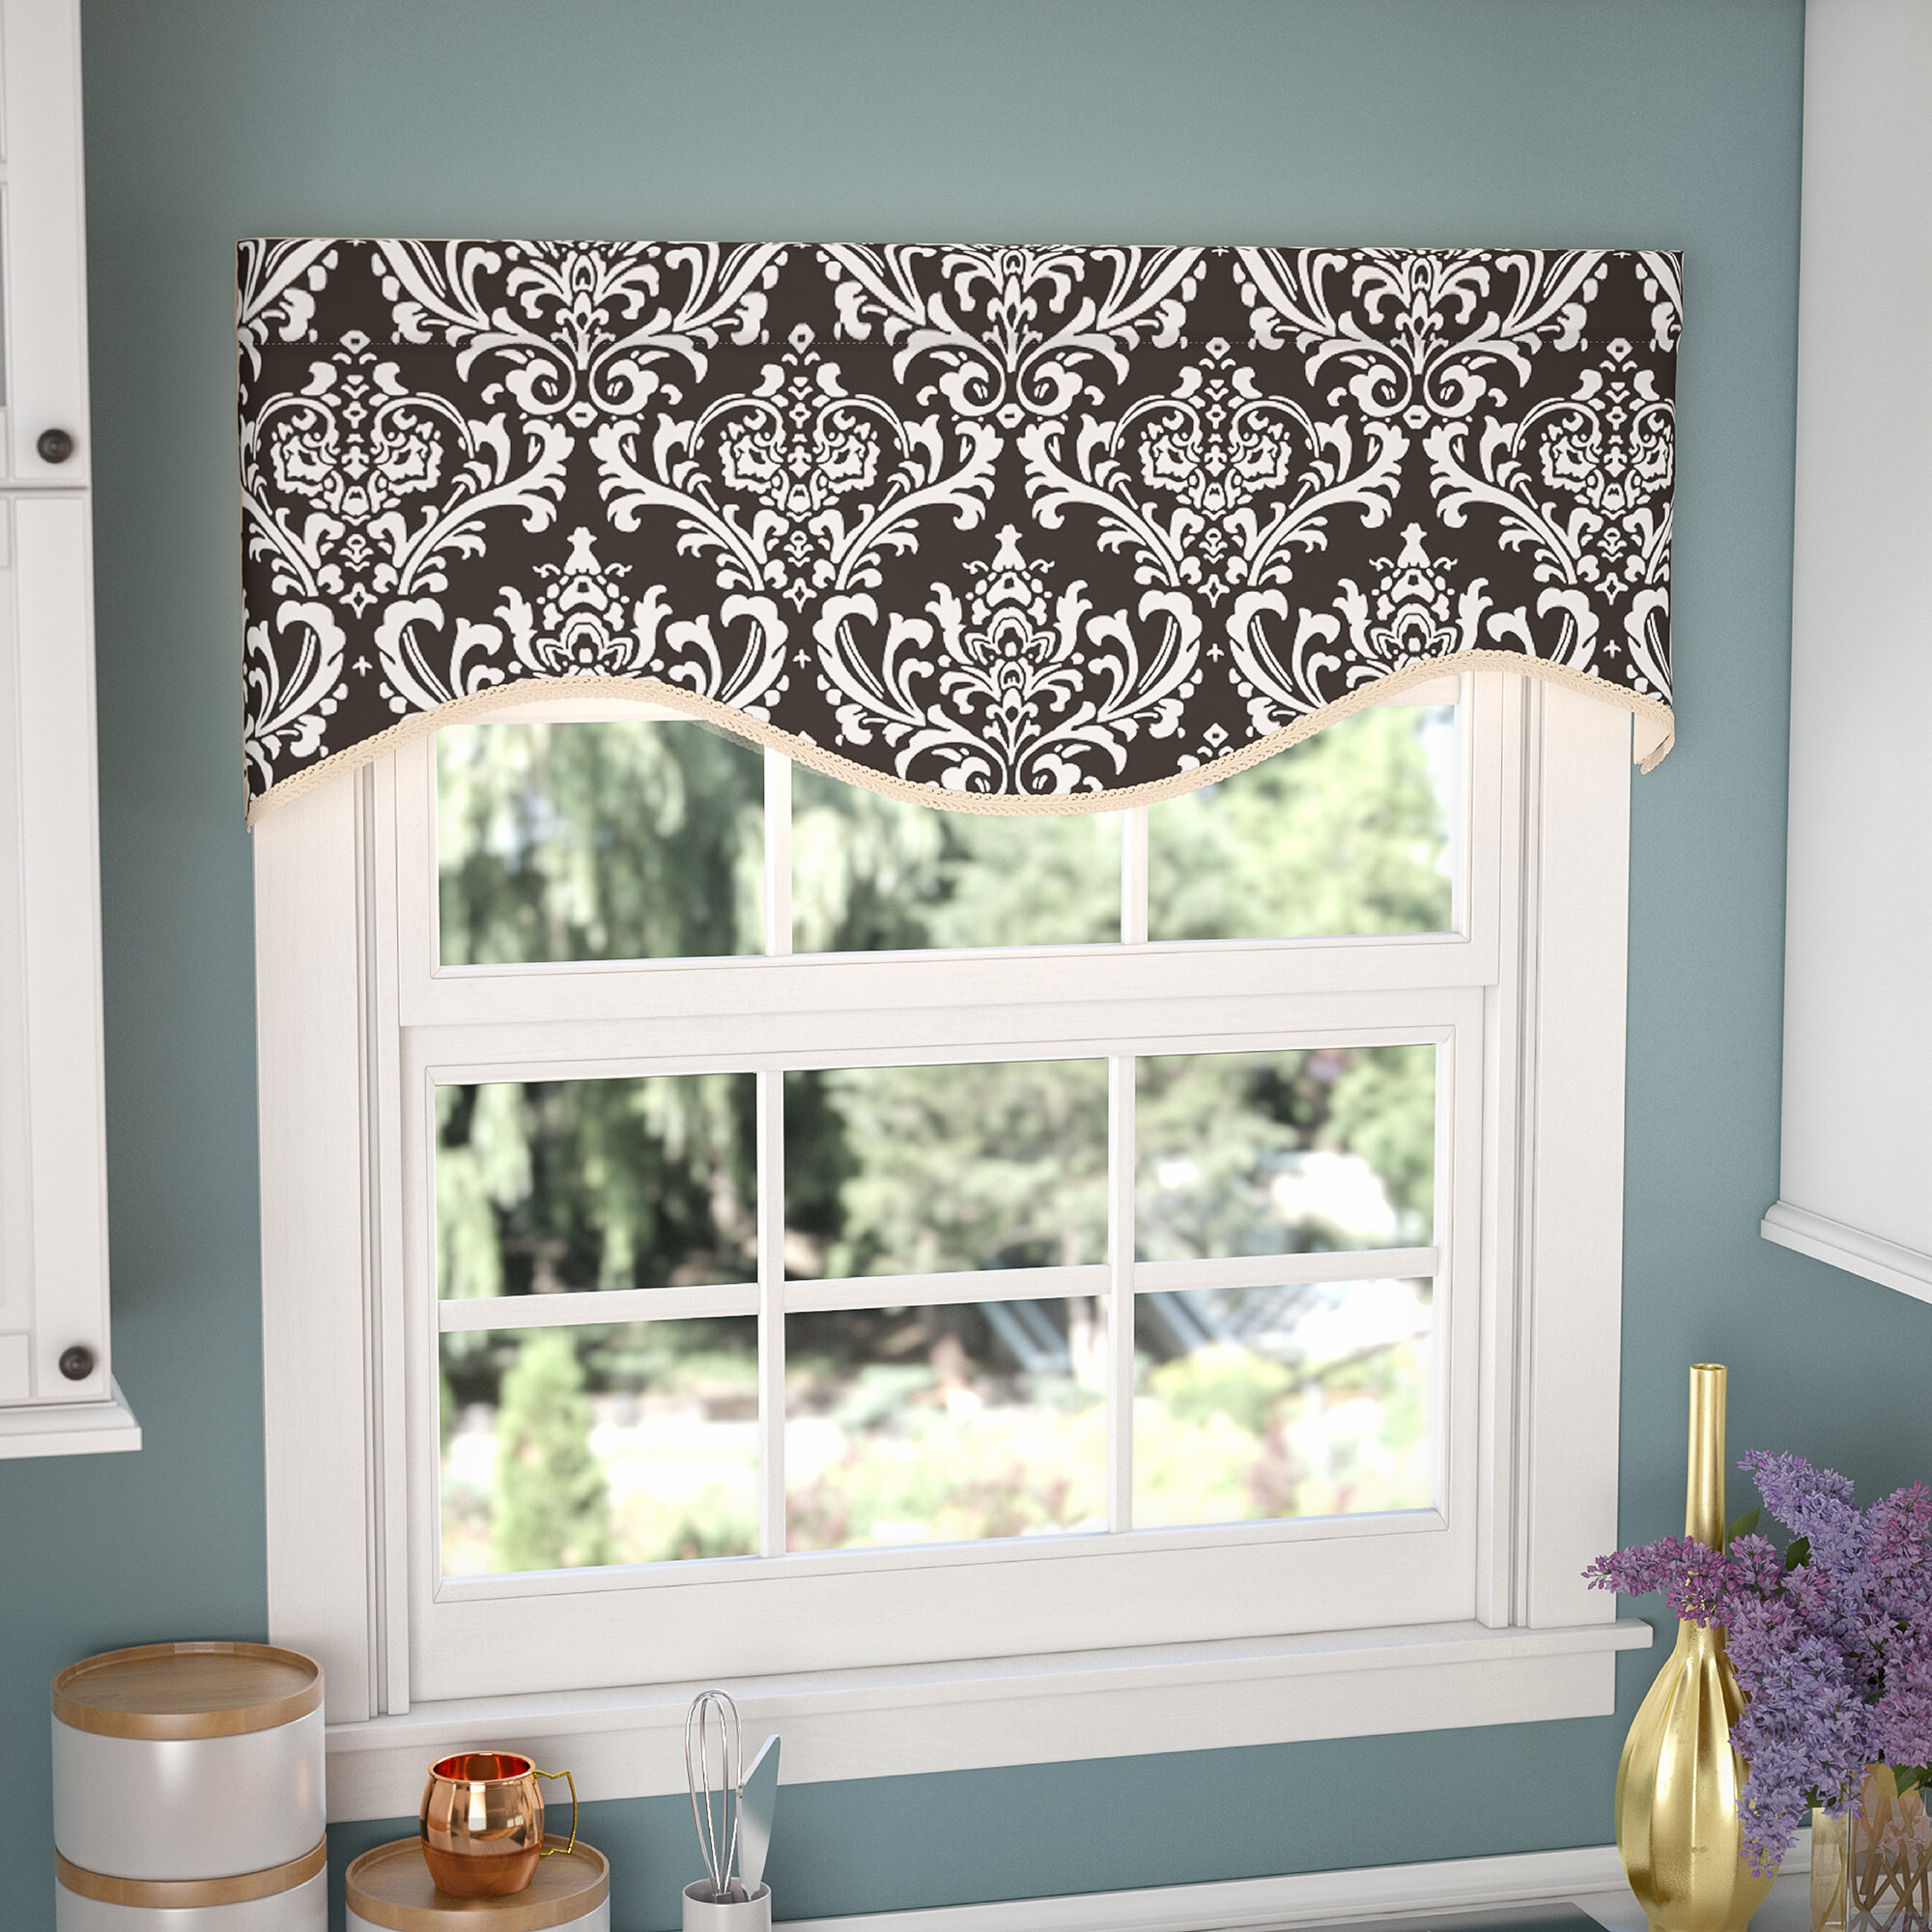 window gallery elegant your decor ideas unnamed for balloon valance valances curtain patterns stunning windows with file in